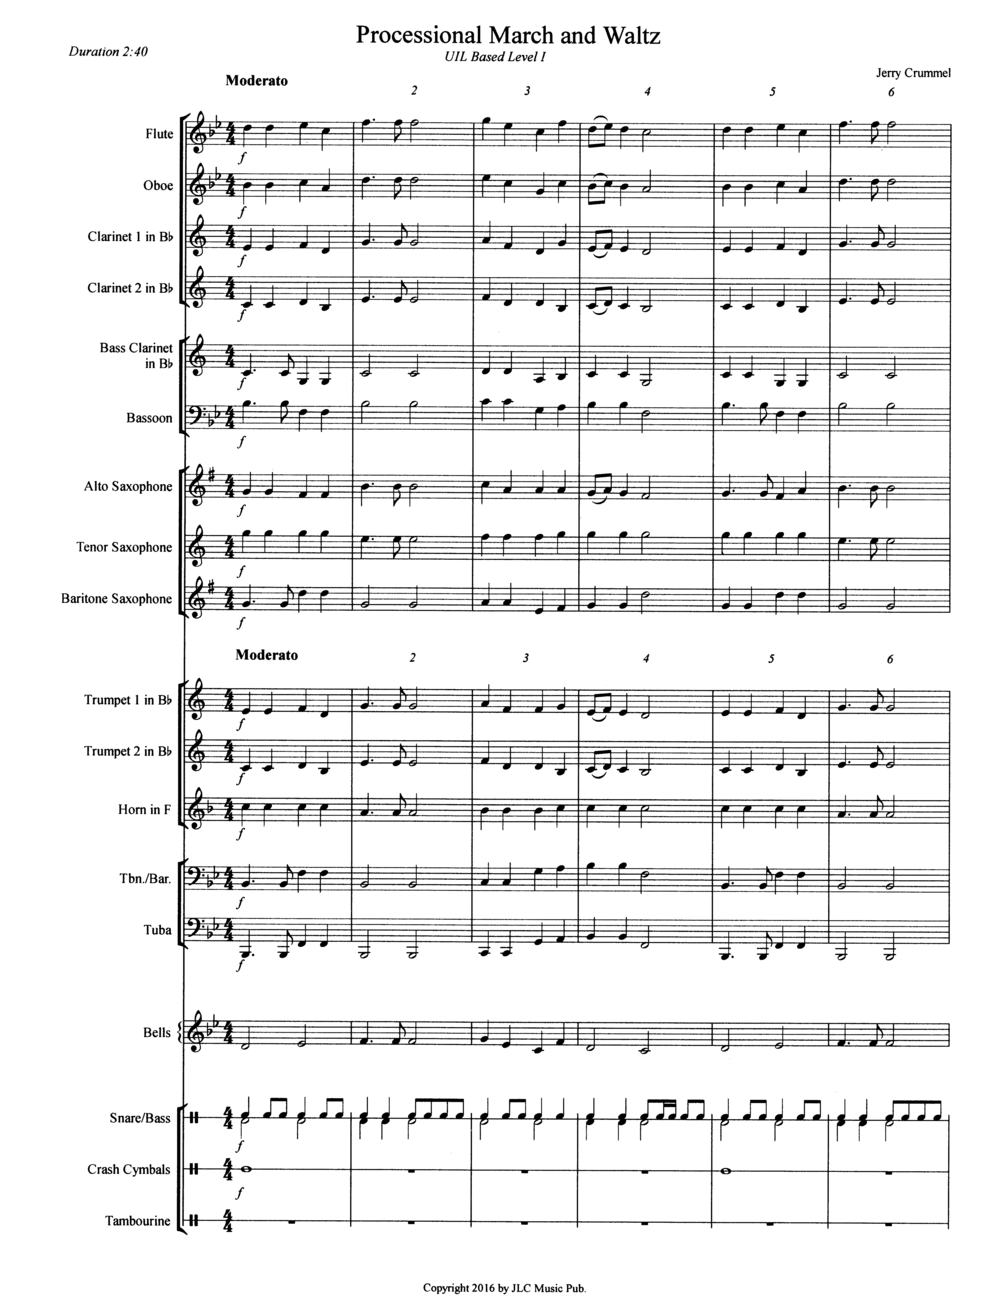 Processional March and Waltz SCORE p.108262017.png